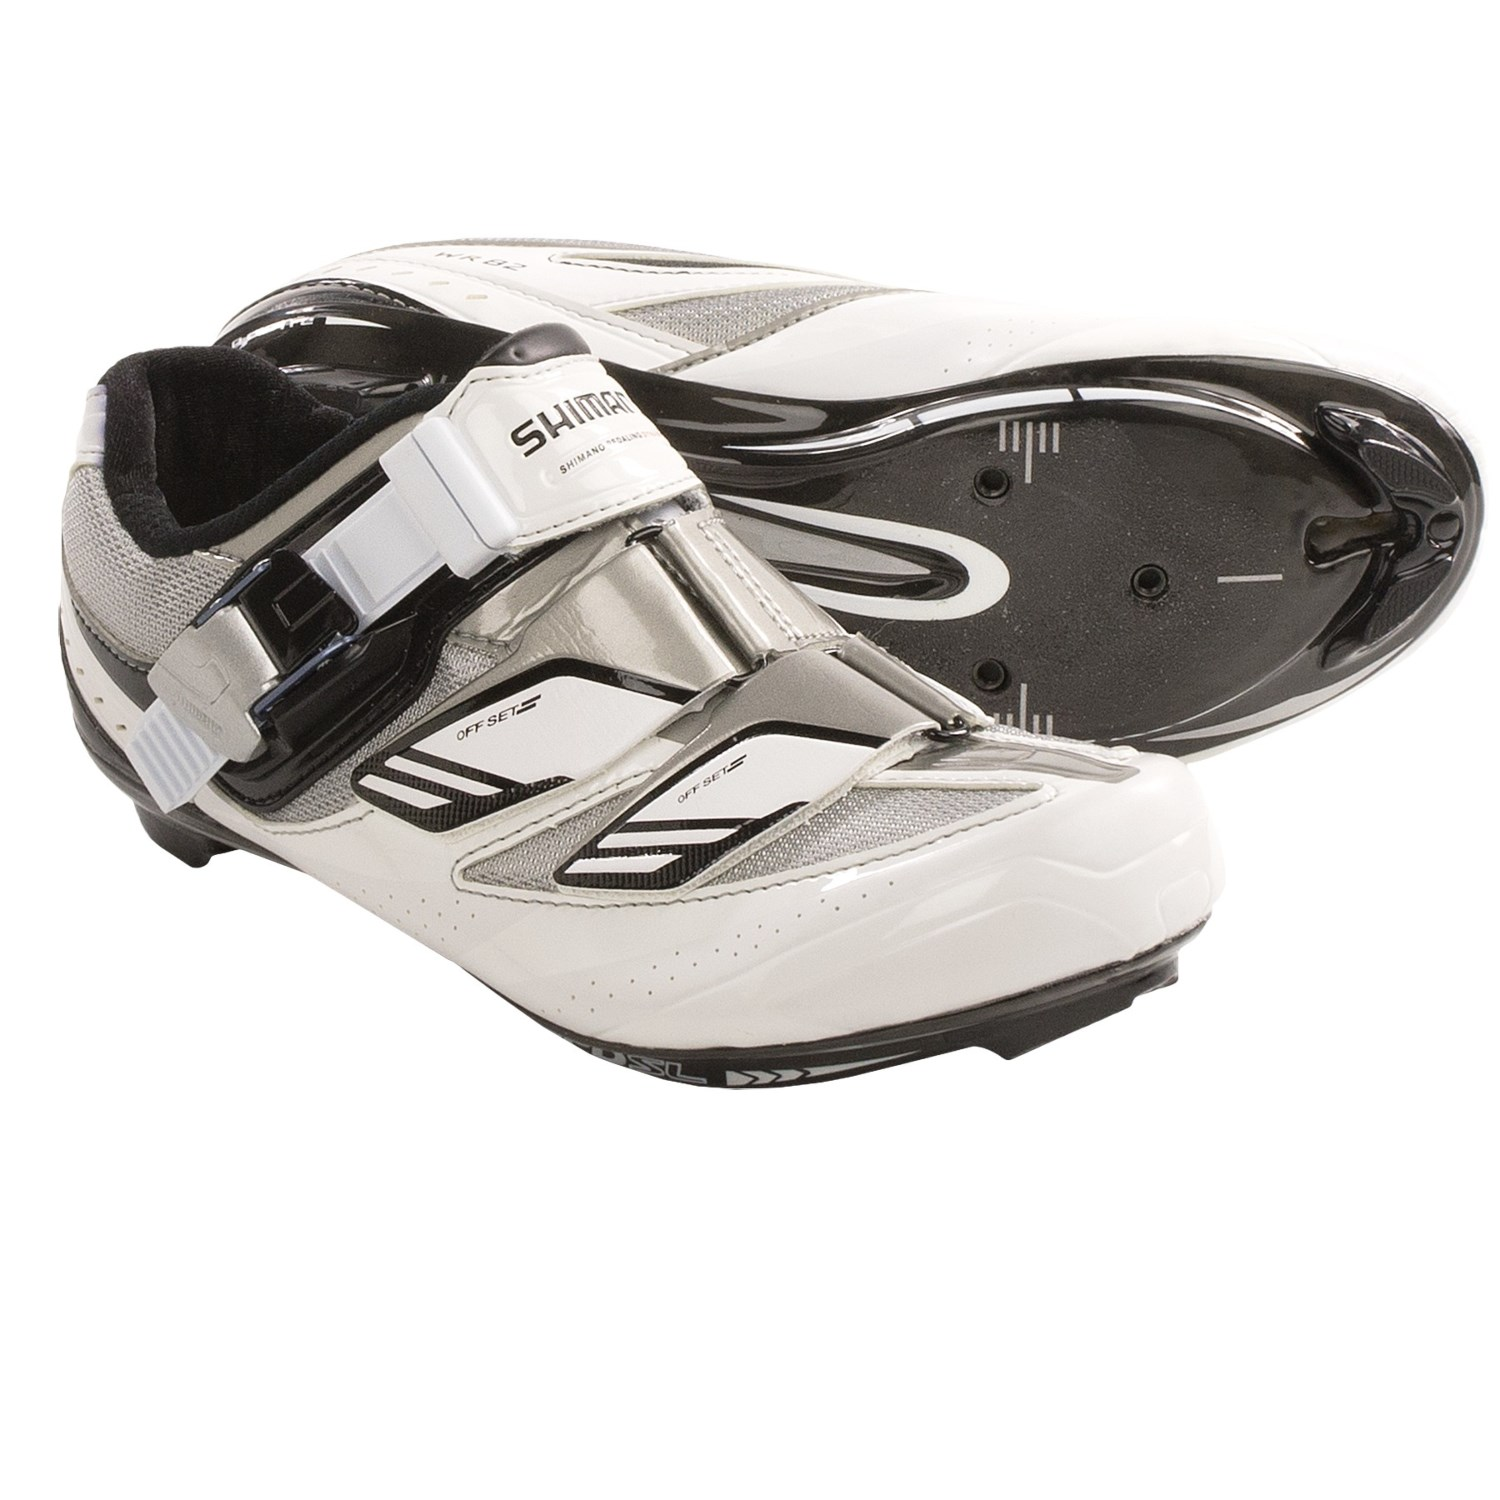 Shimano Sh-cw40 Clickr Womens Cycle Shoes Cycling Shoes Womens Ladies